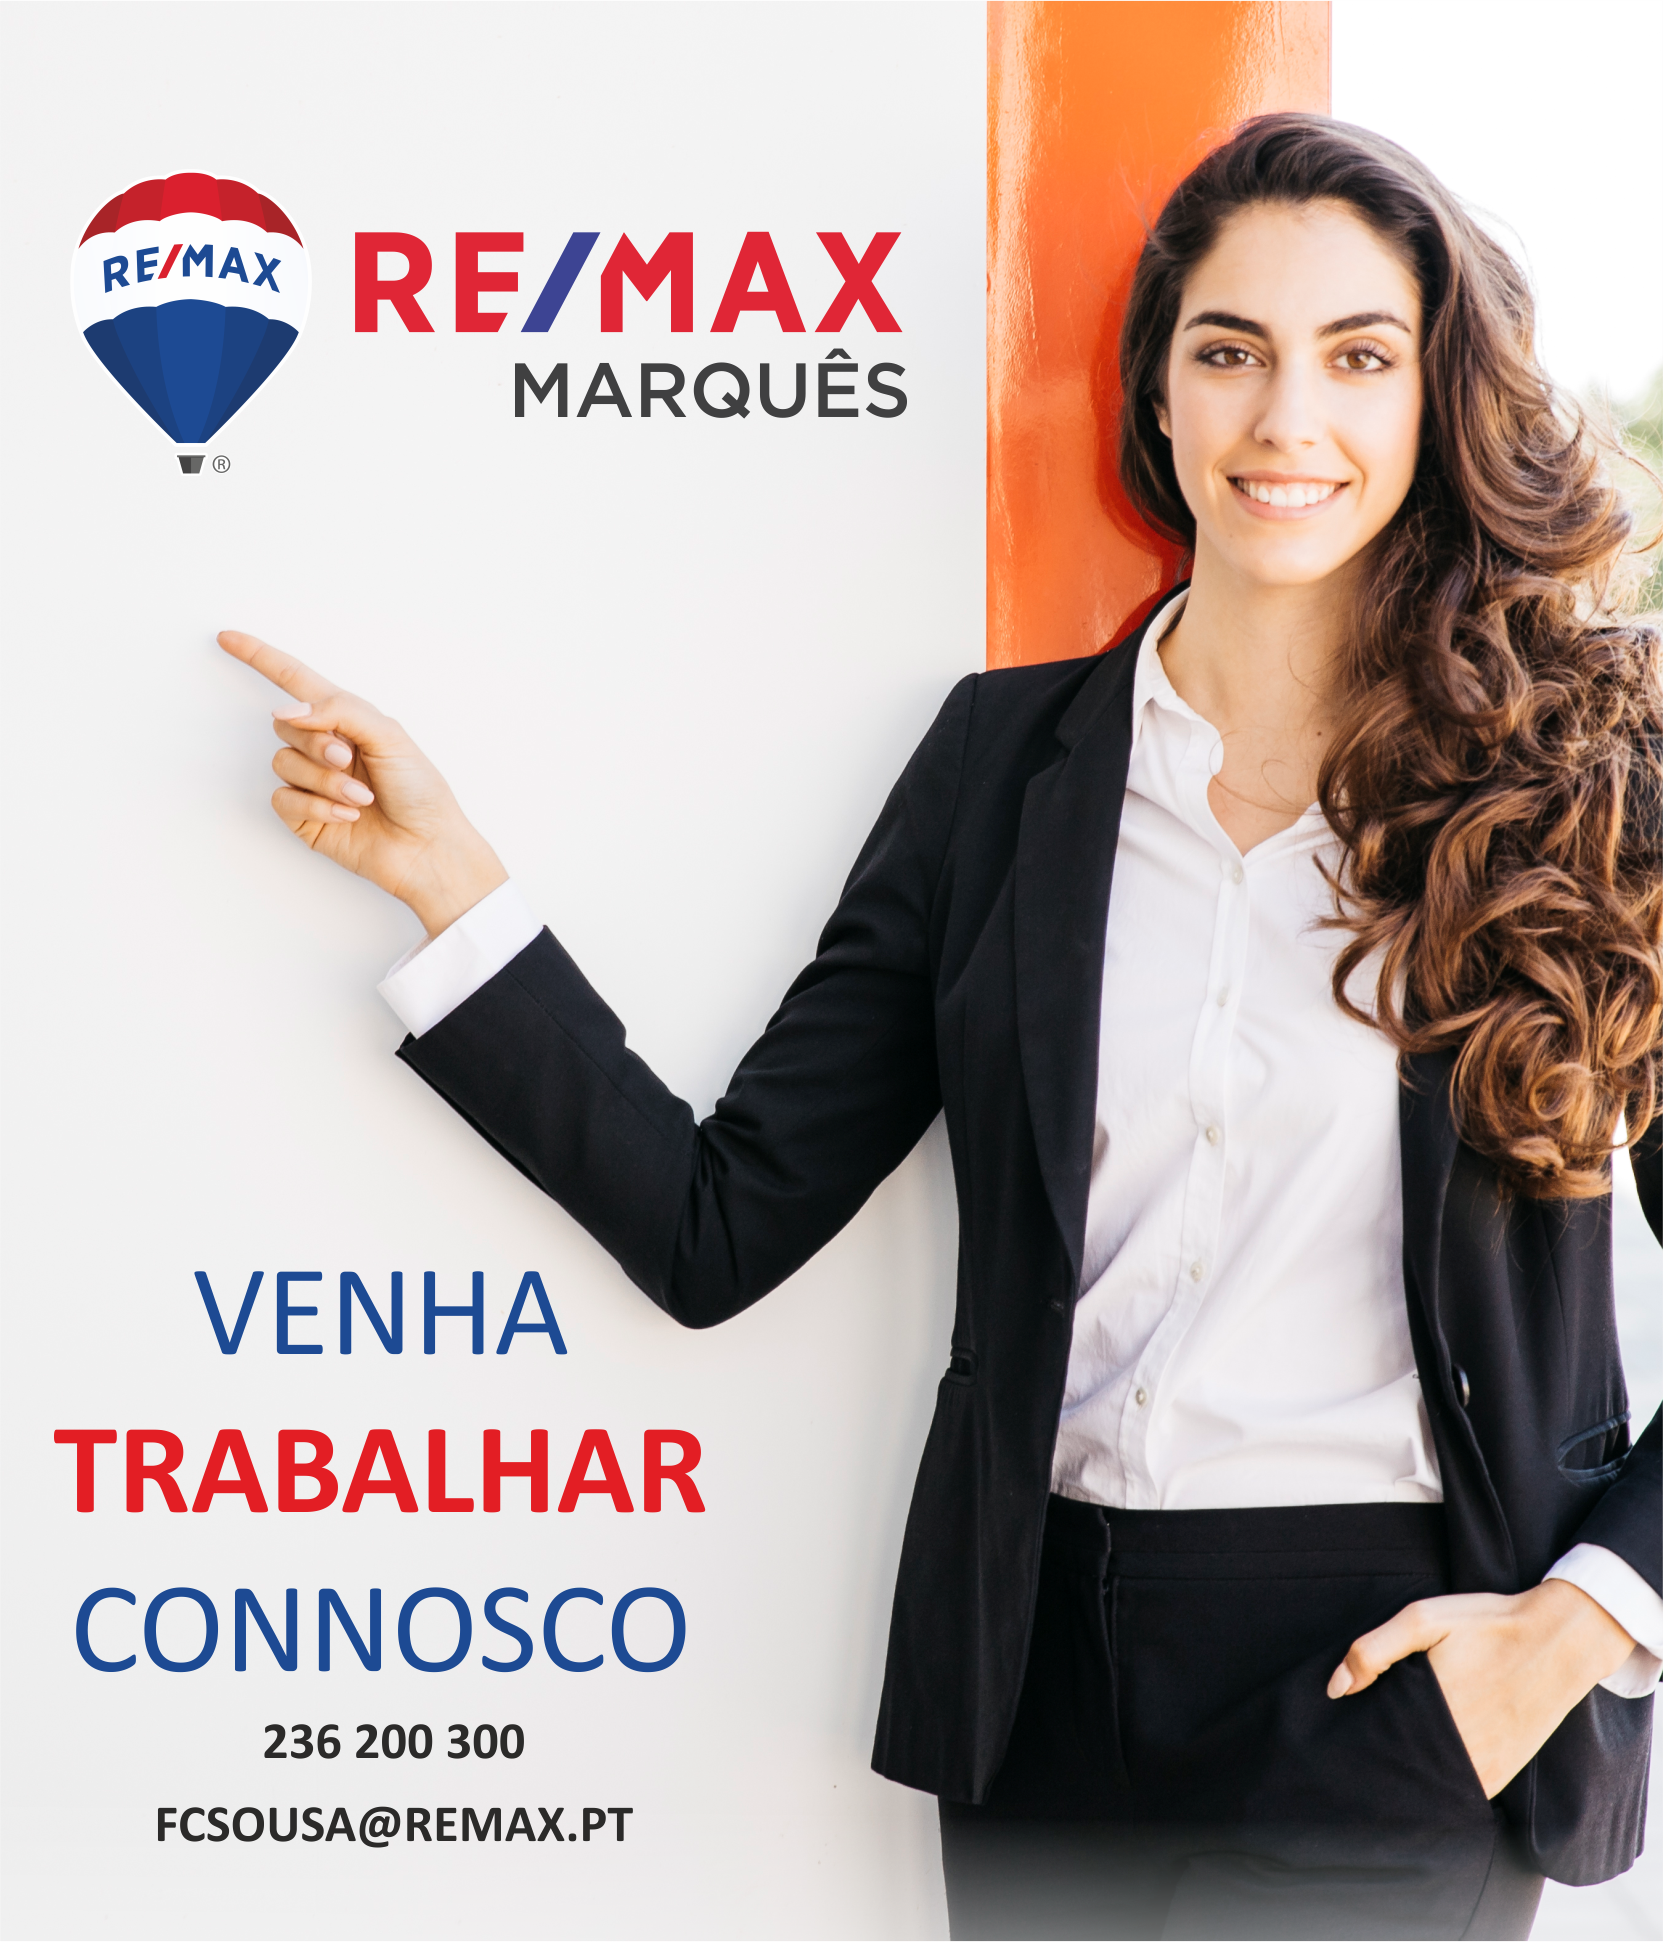 https://www.facebook.com/marquesremax